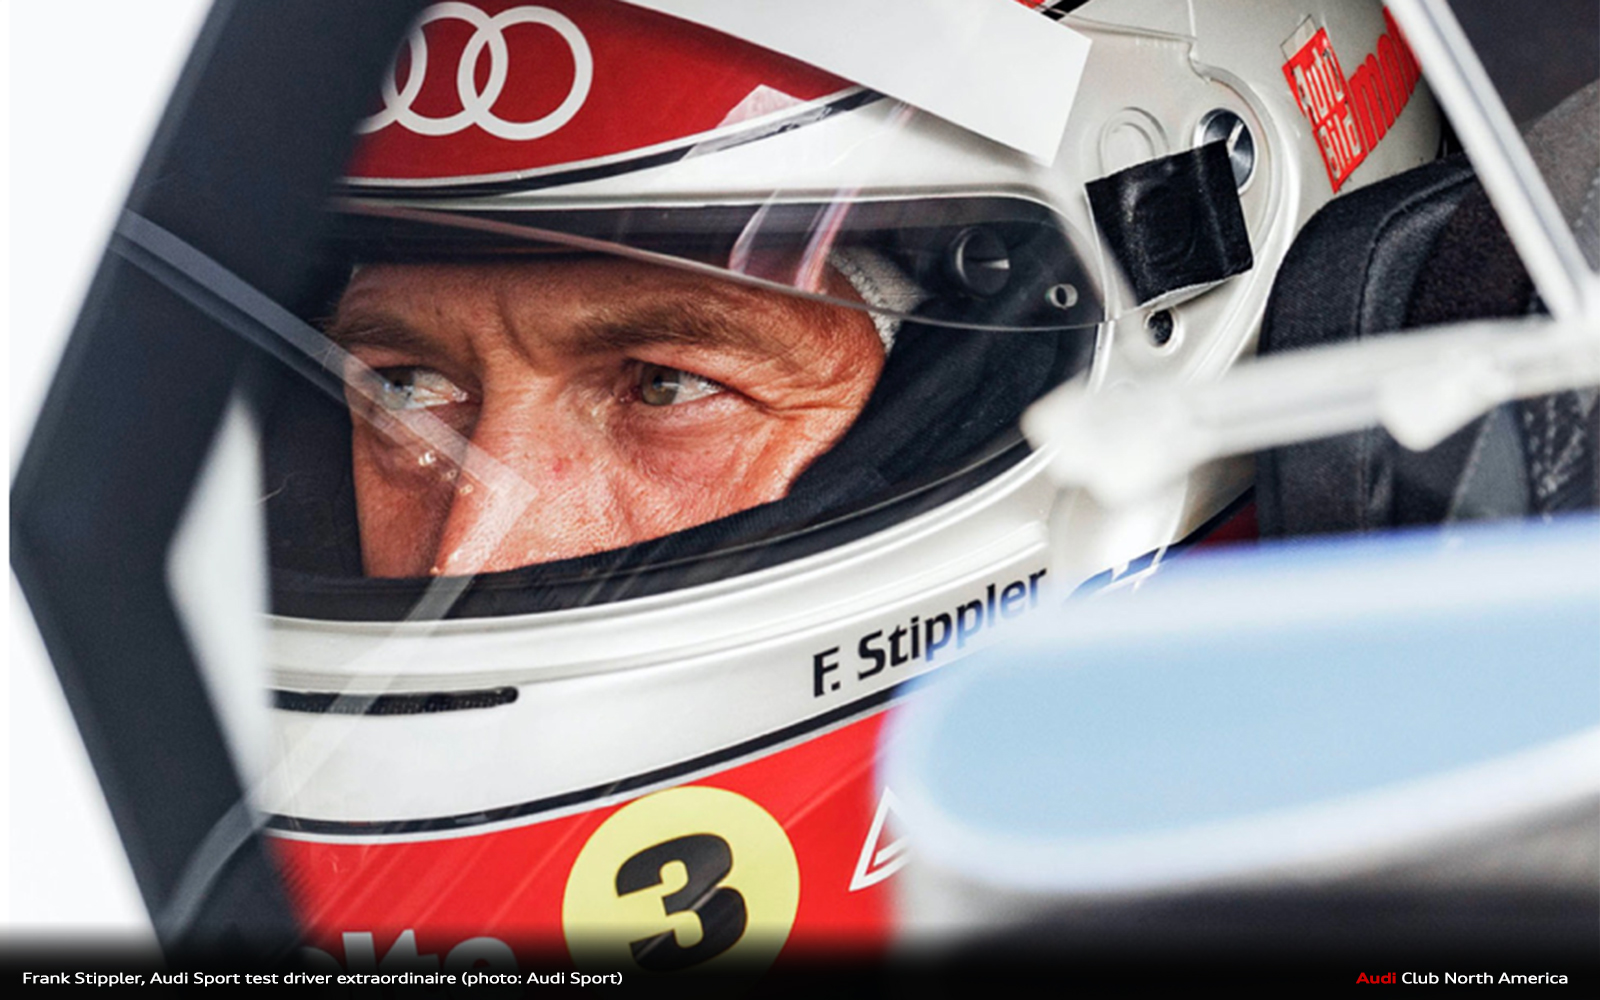 The Right Stuff: Just What Does It Take To Be A Top Audi Test Driver?